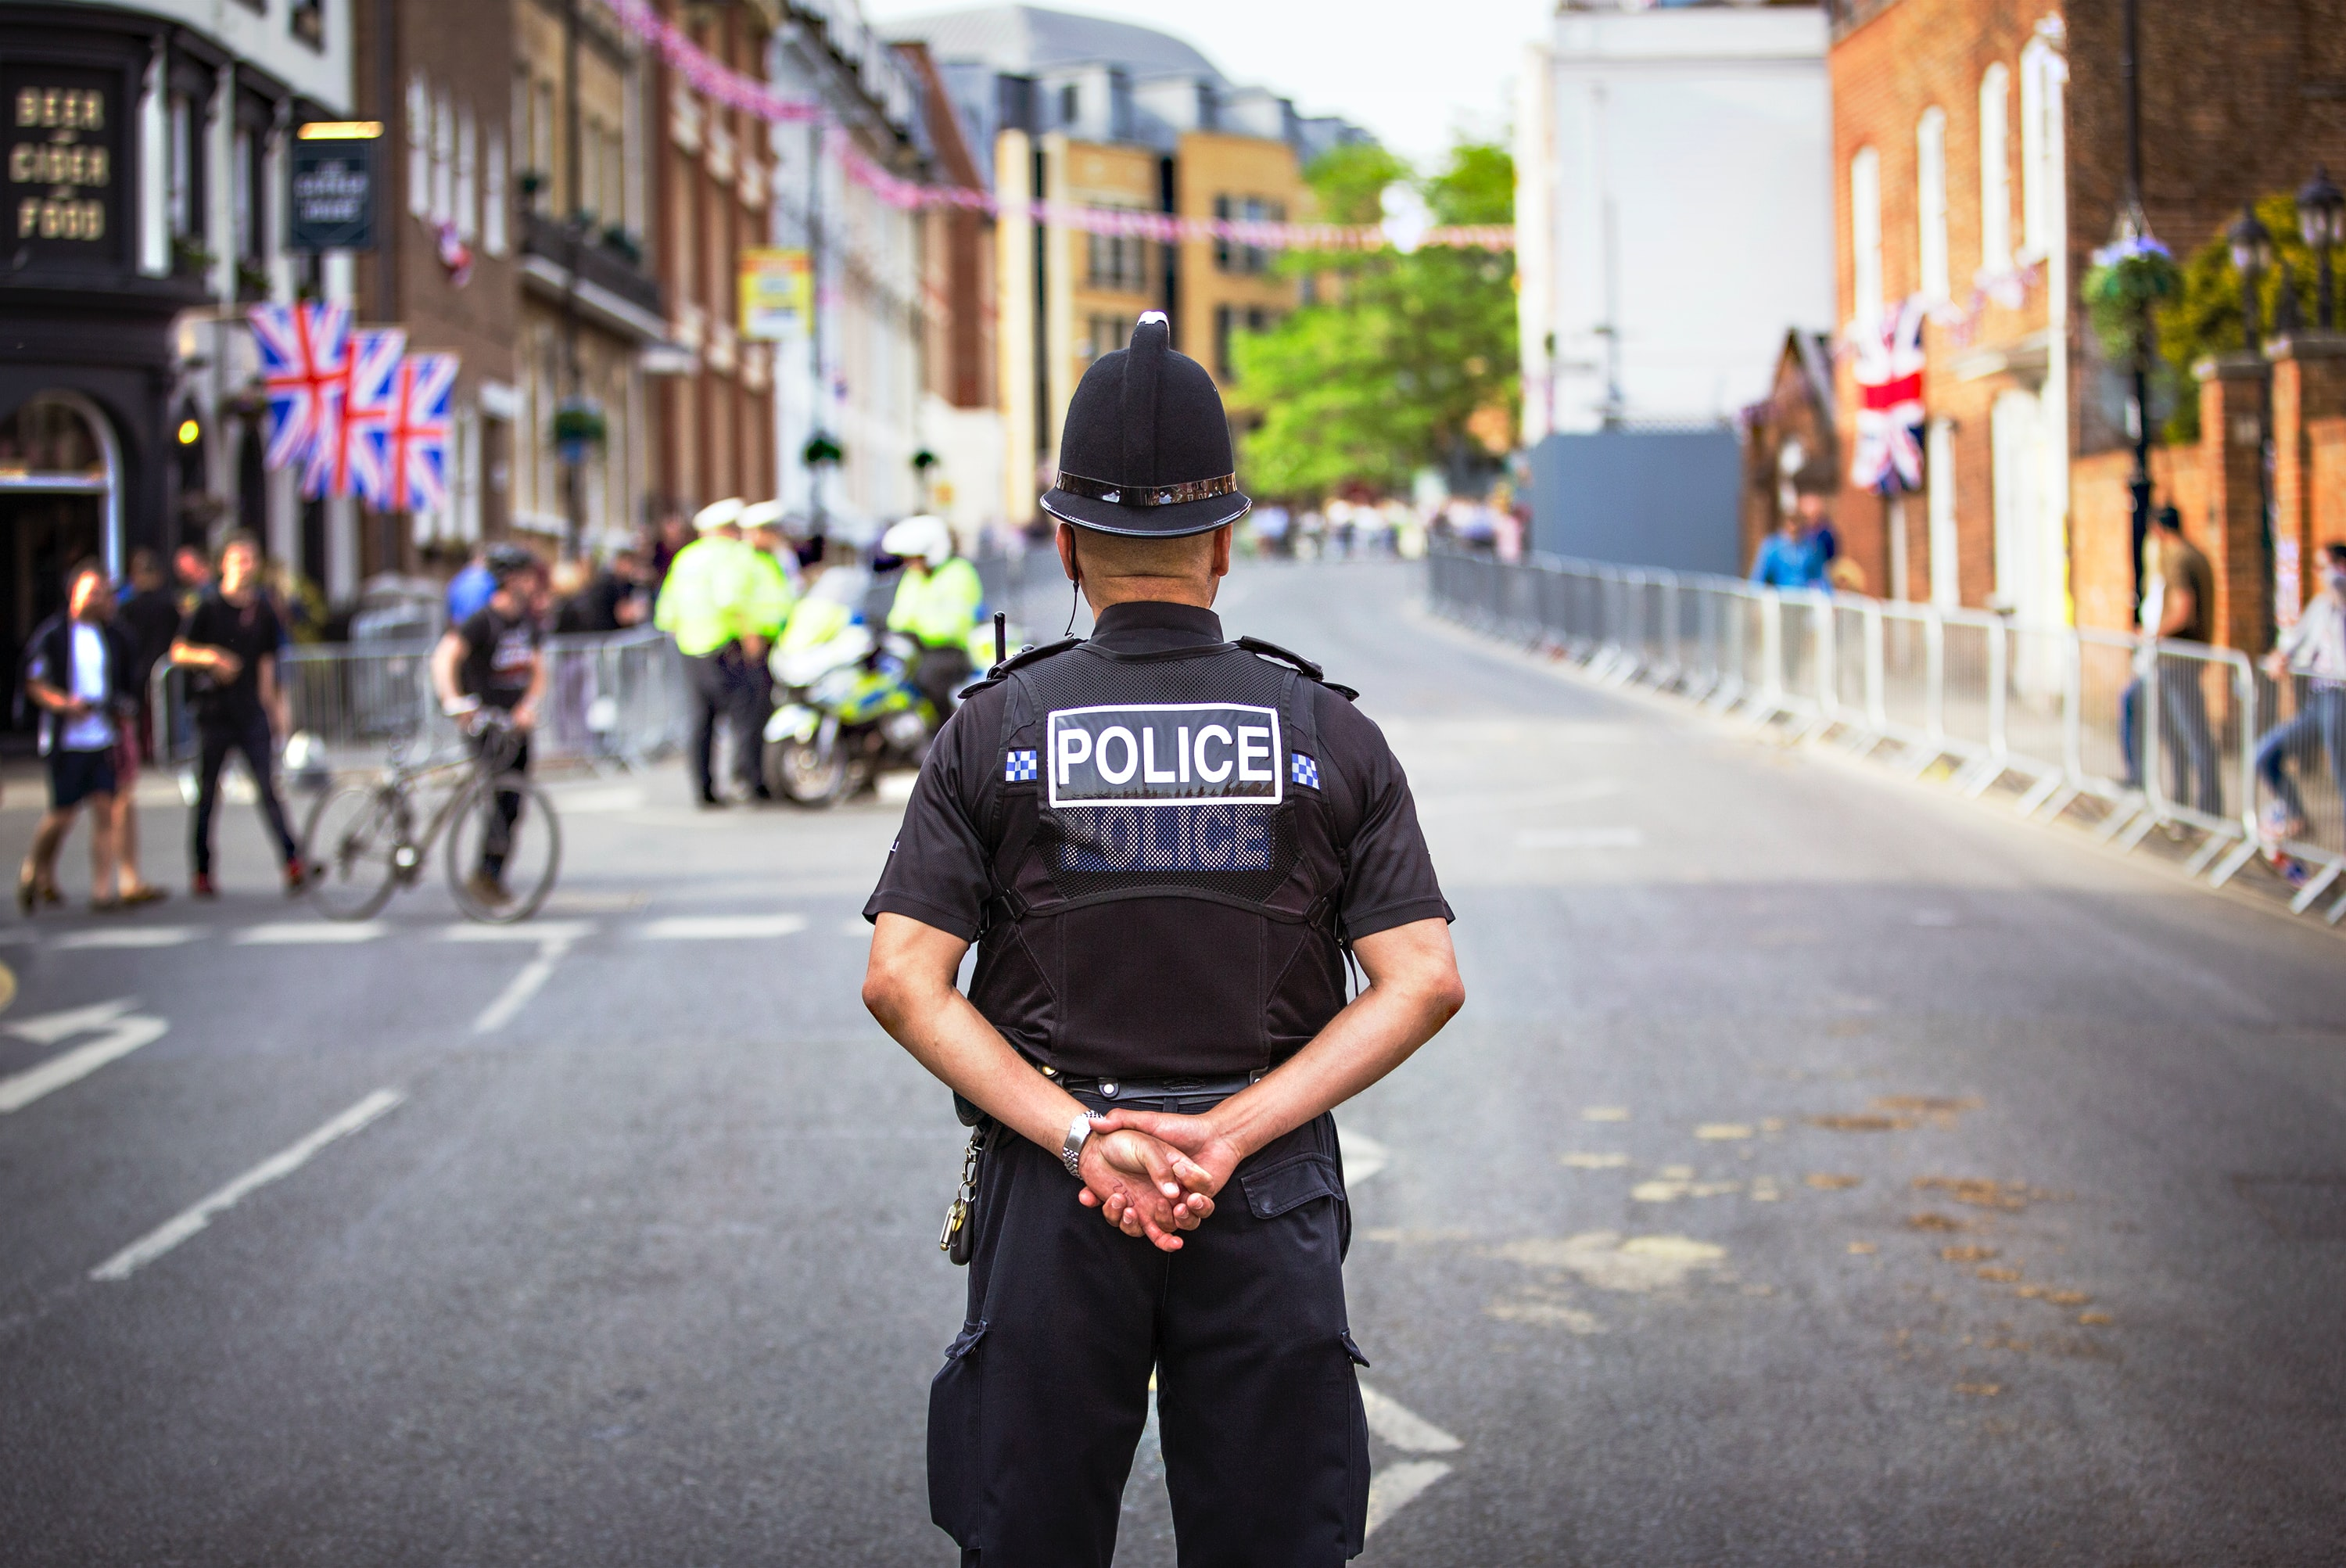 400,000 Records Accidentally Deleted By Police